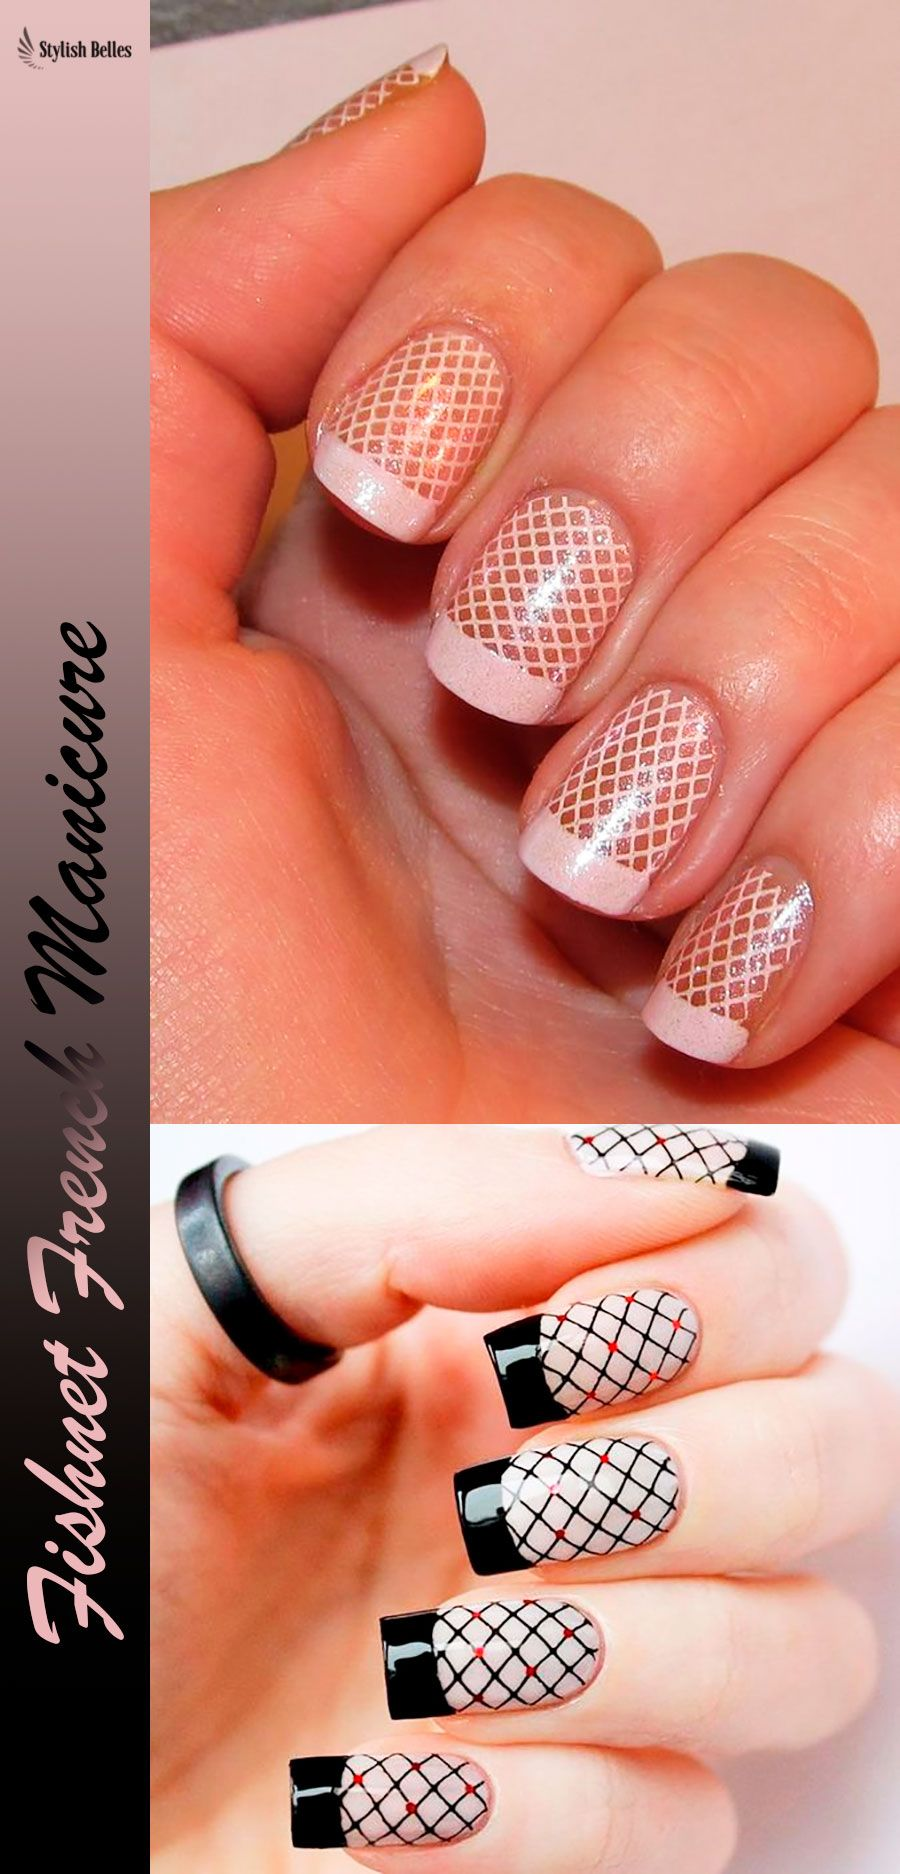 French Fussnägel Bilder 9 Stunning Modern French Manicure Ideas Nägel Nail Arts Nail